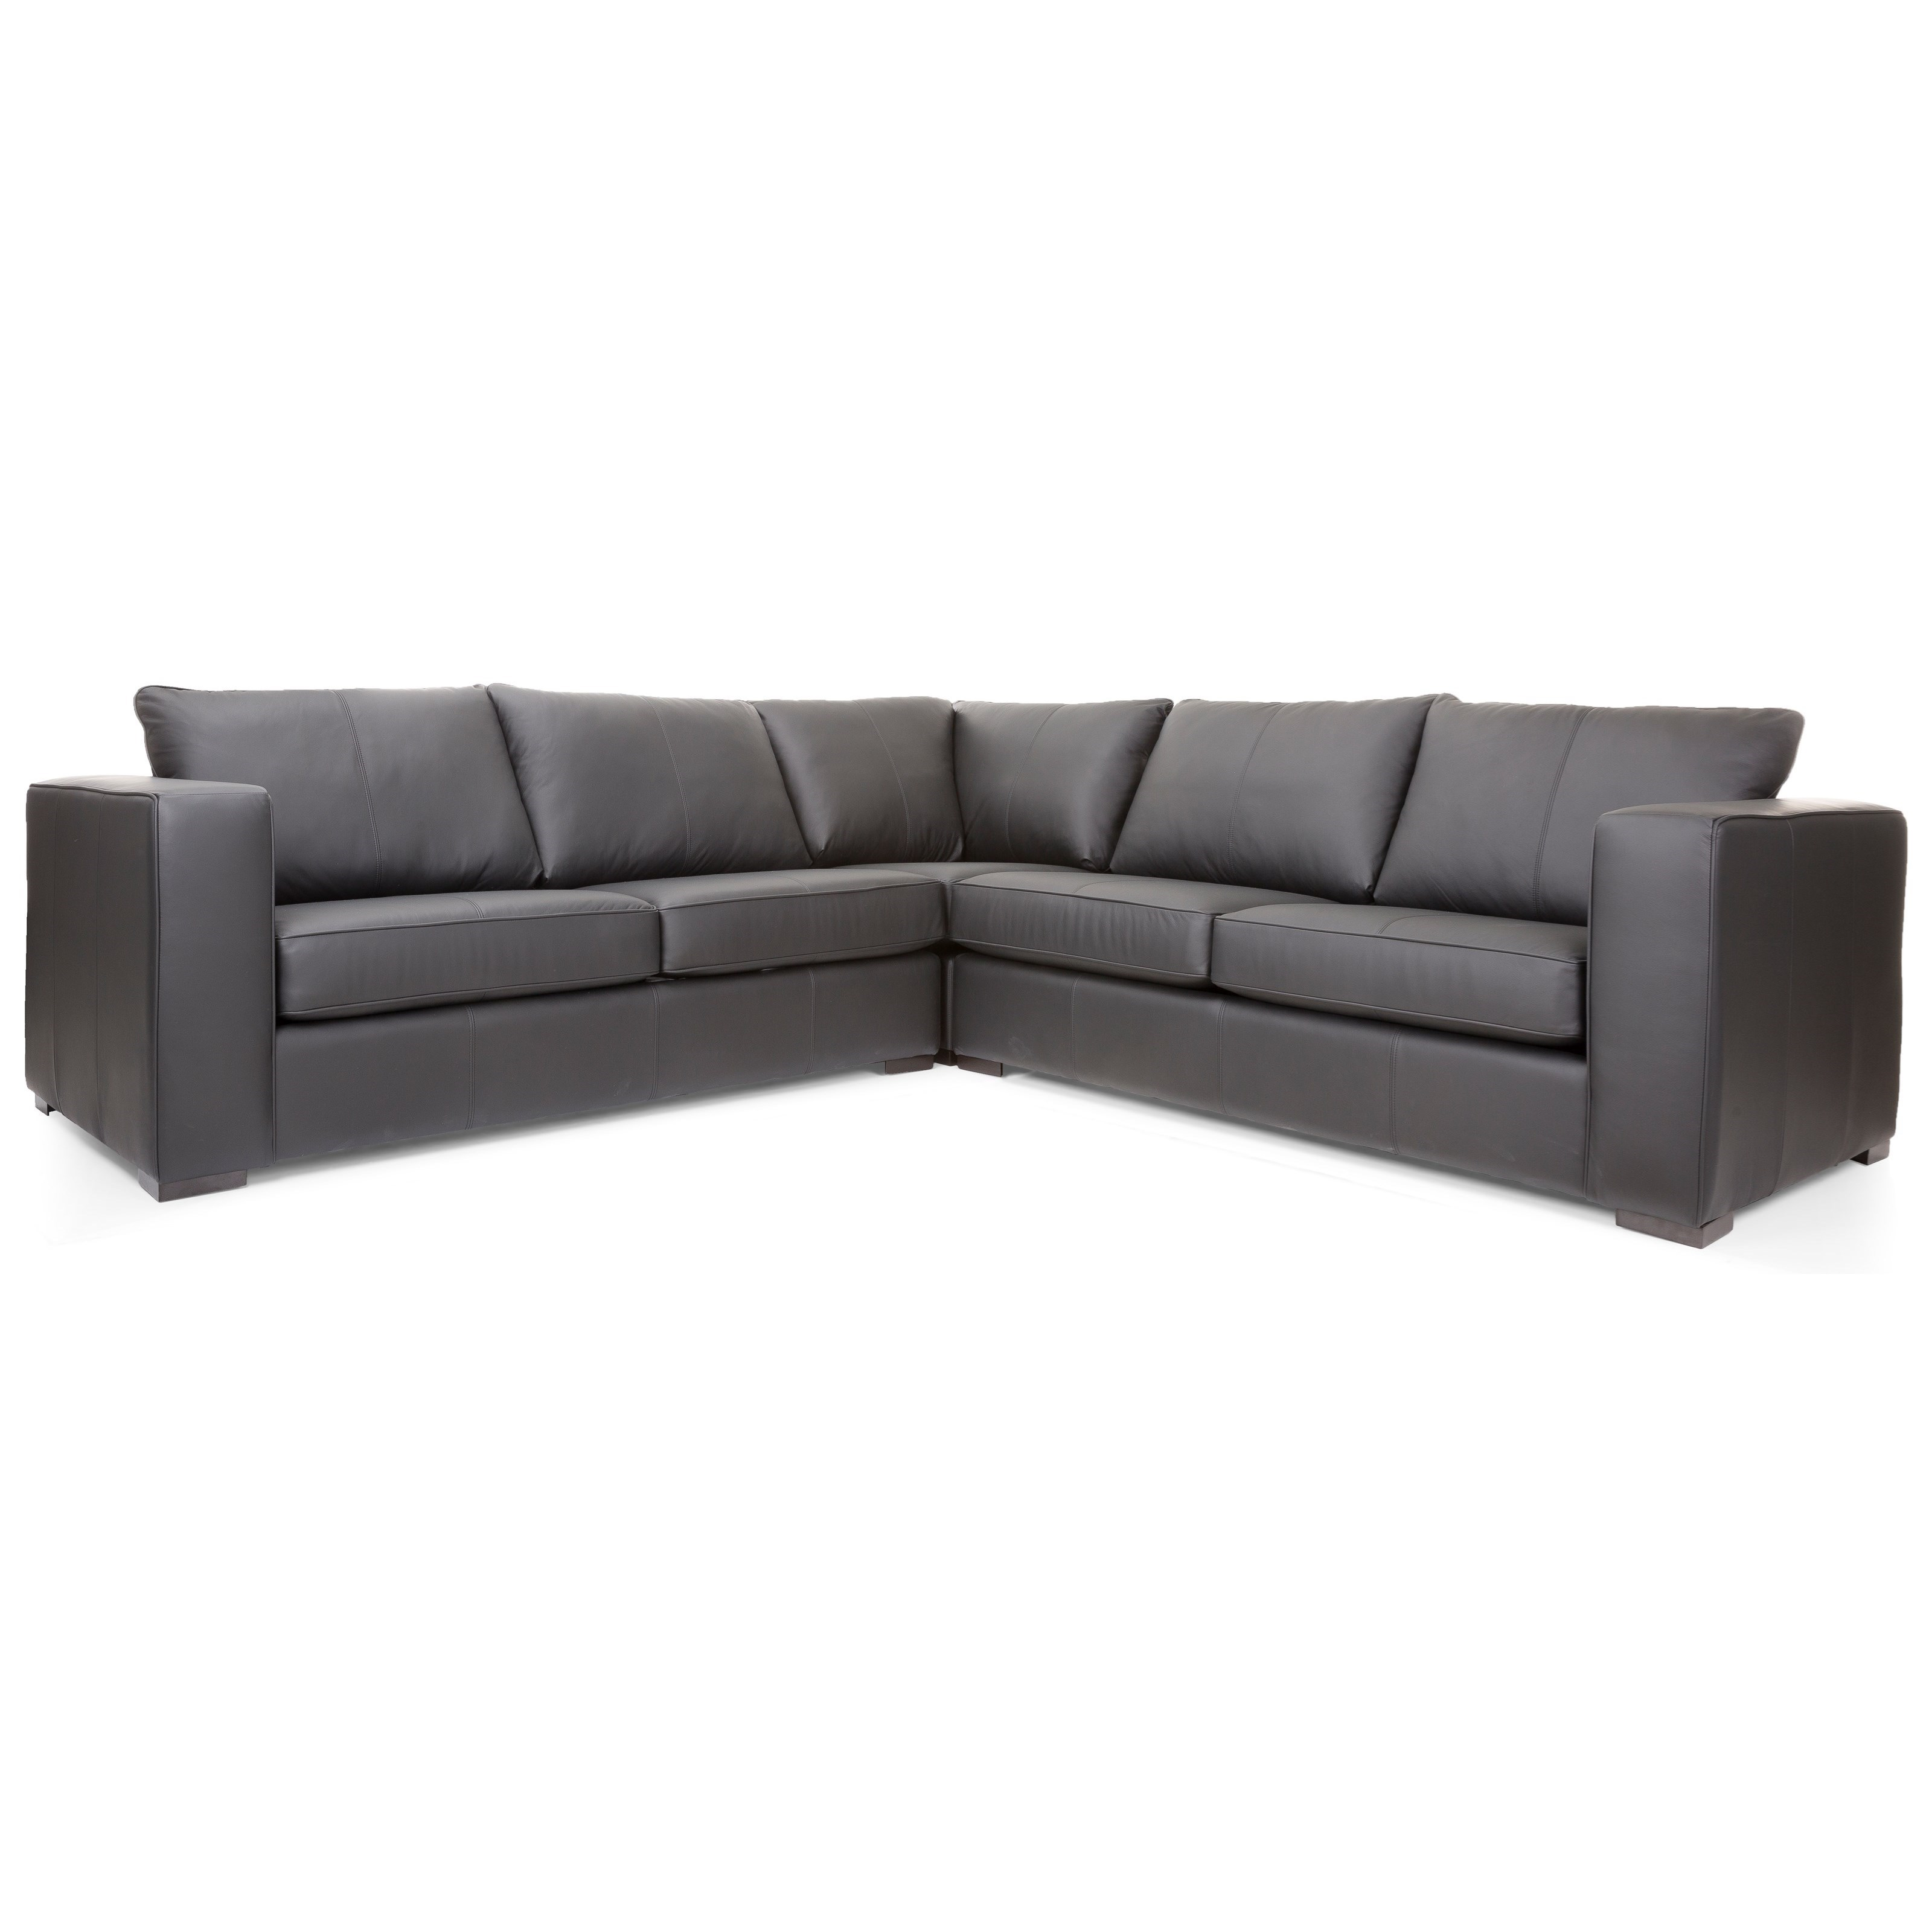 2900 Sectional Sofa by Decor-Rest at Wayside Furniture